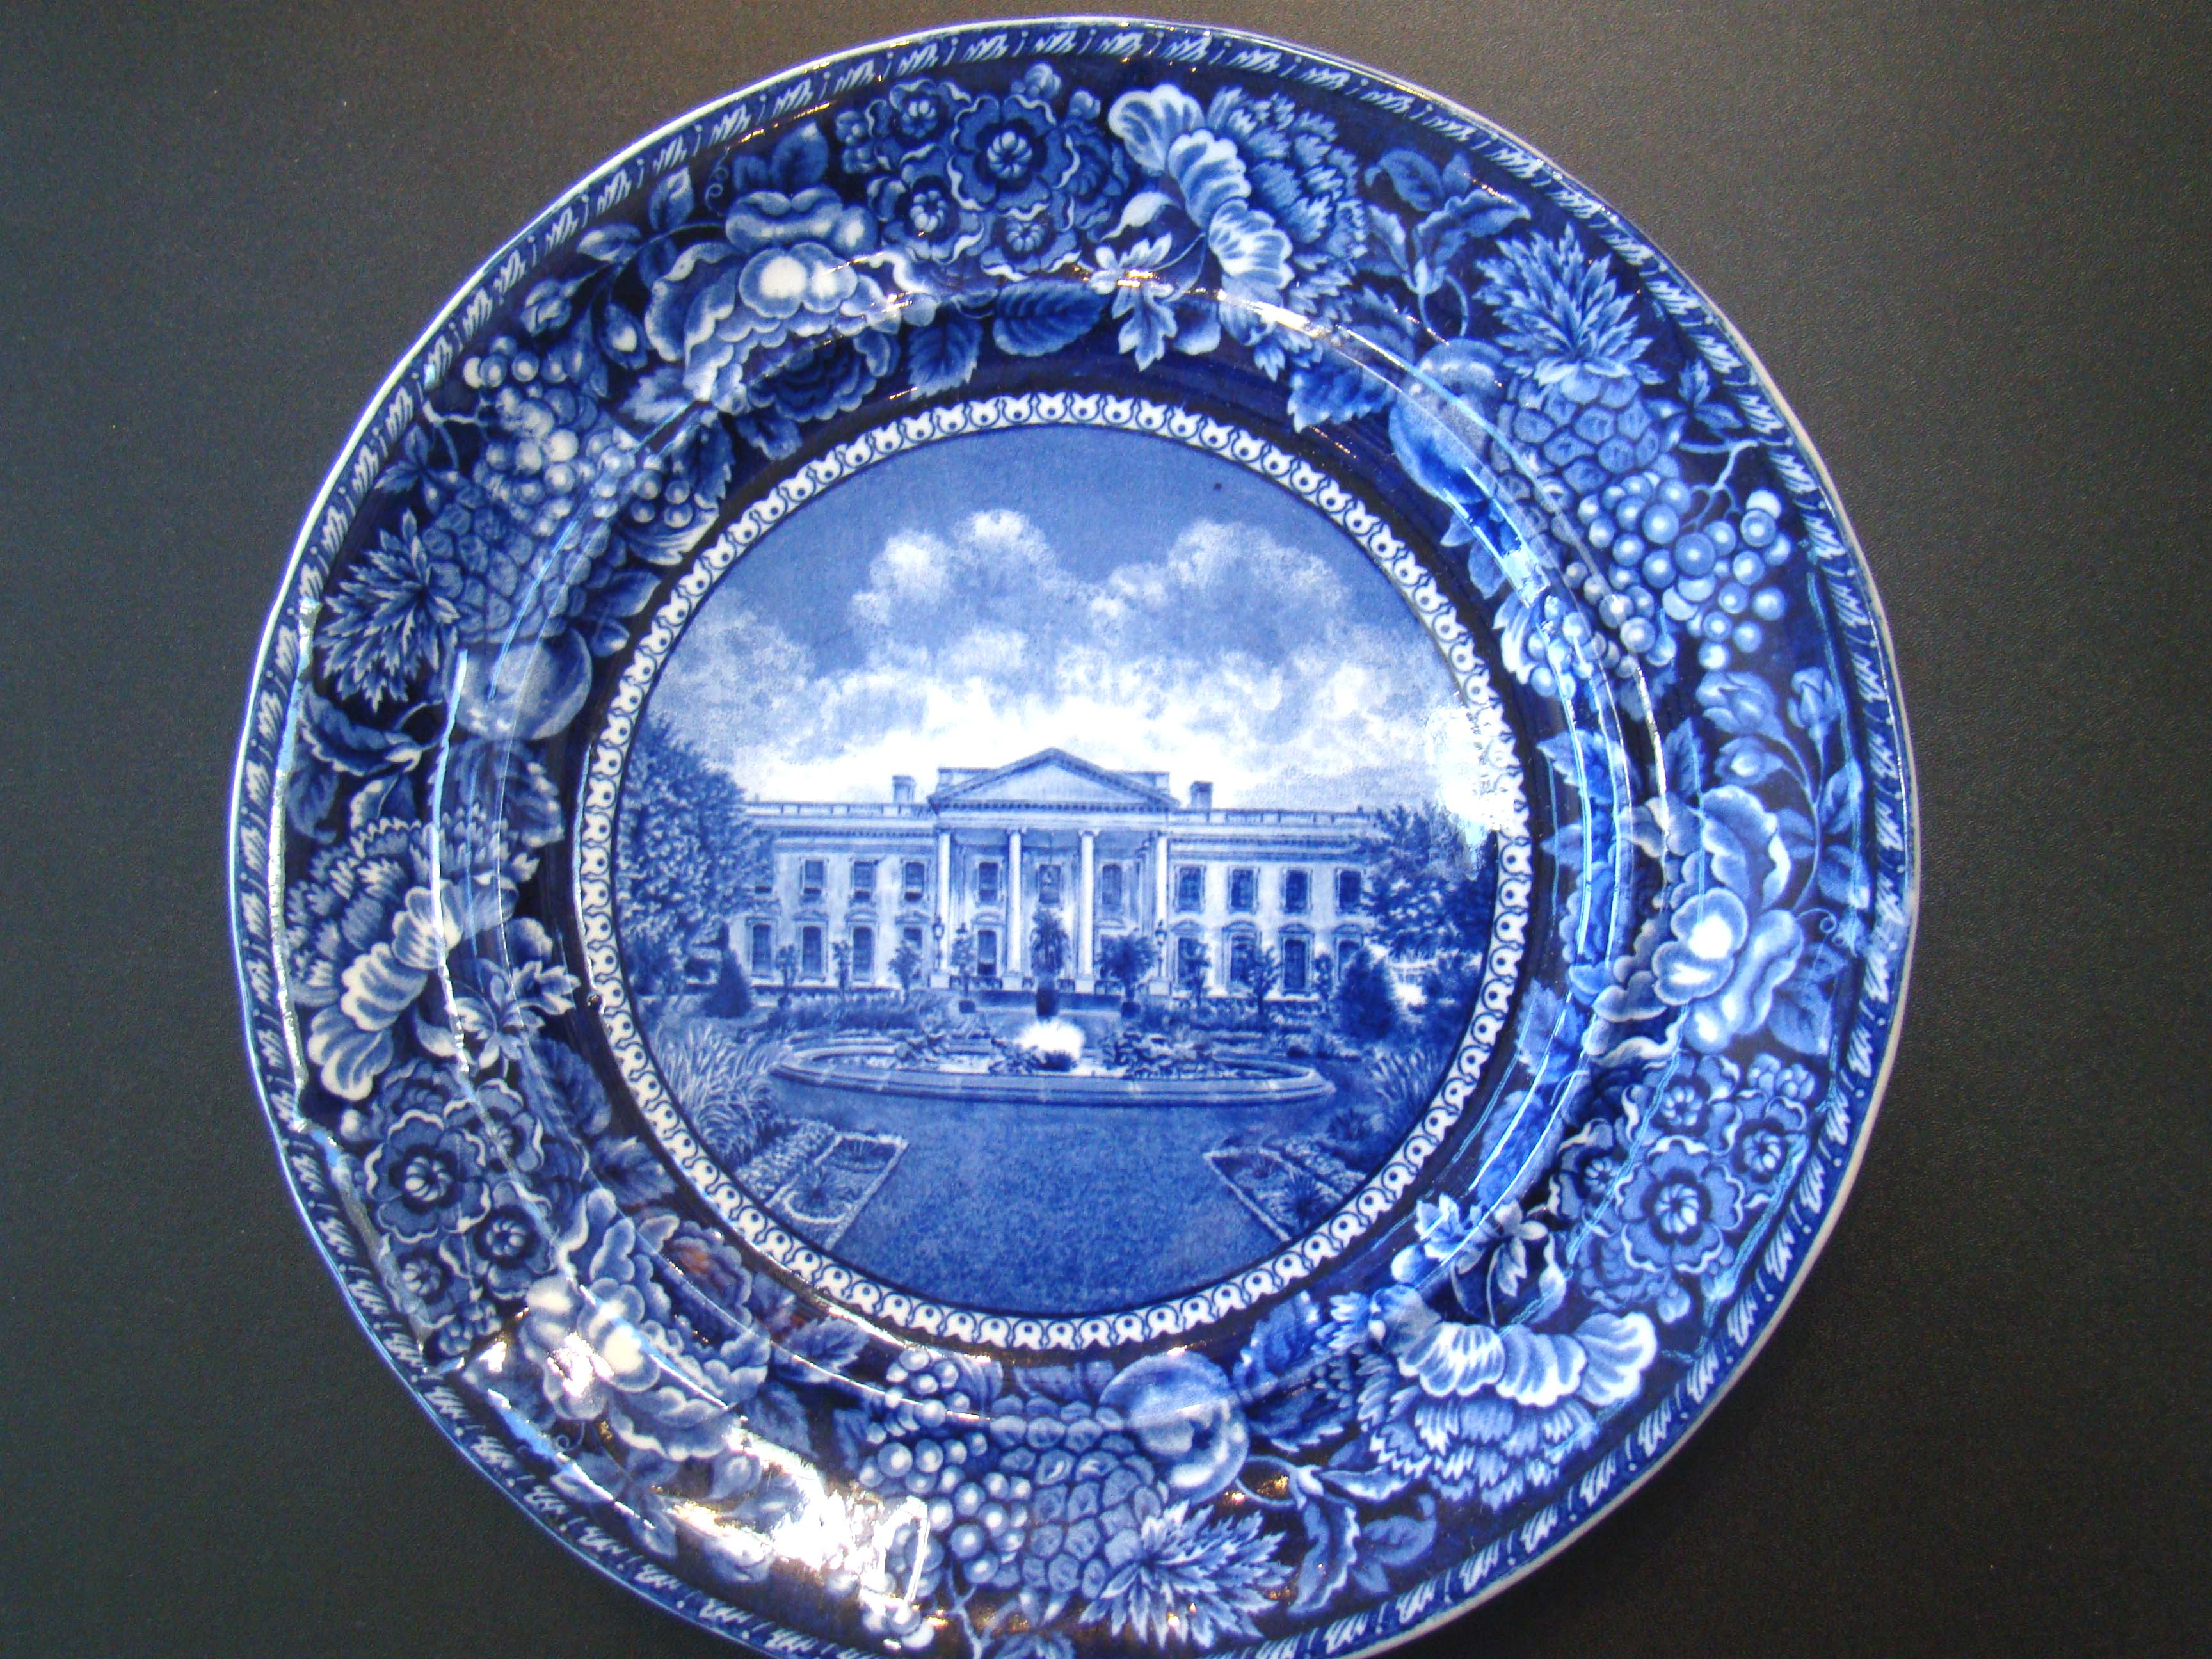 click to view larger image of An early 20th century Commemorative plate depicting The White House by Rowland & Marsellus circa 1906